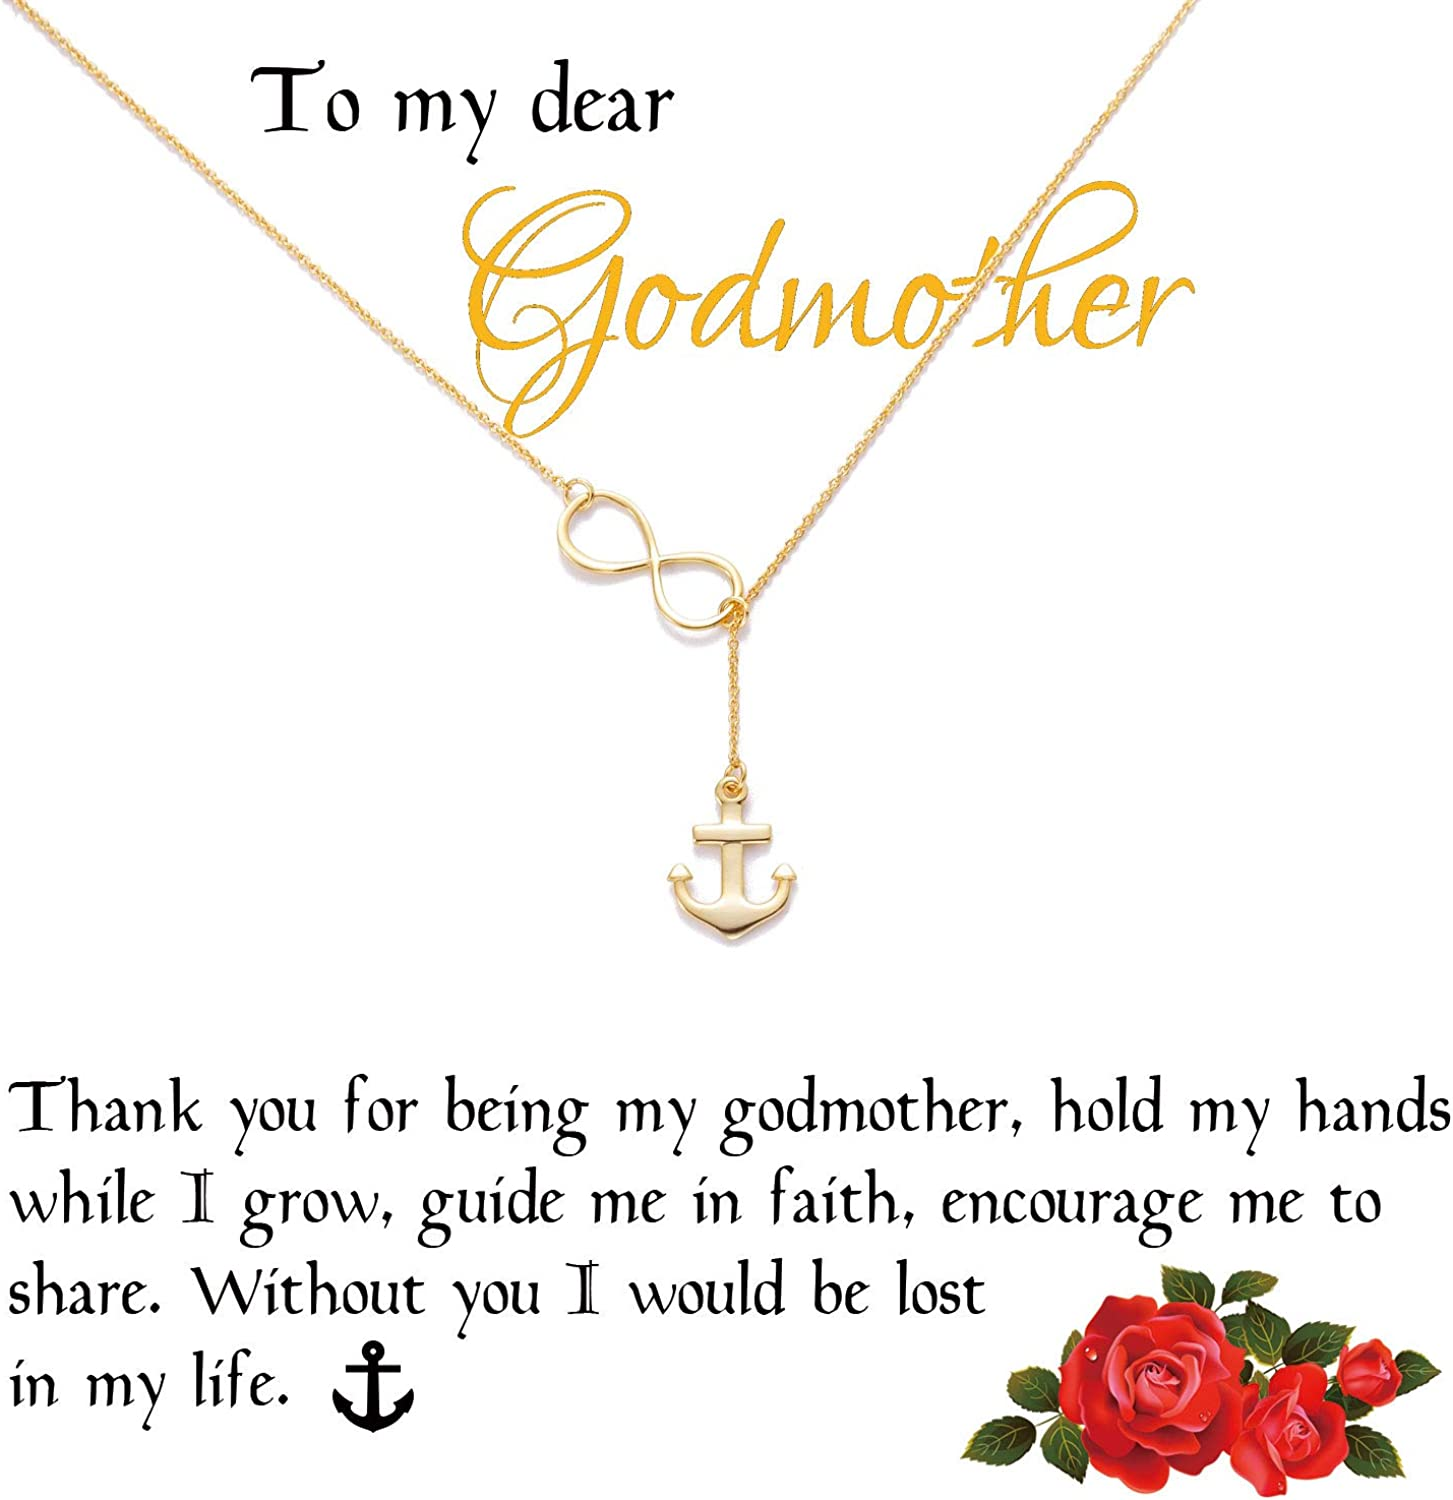 Zealmer 18K Gold Plated Infinity Angel Wing Clover Cross Anchor Necklace Godmother Gift for Women